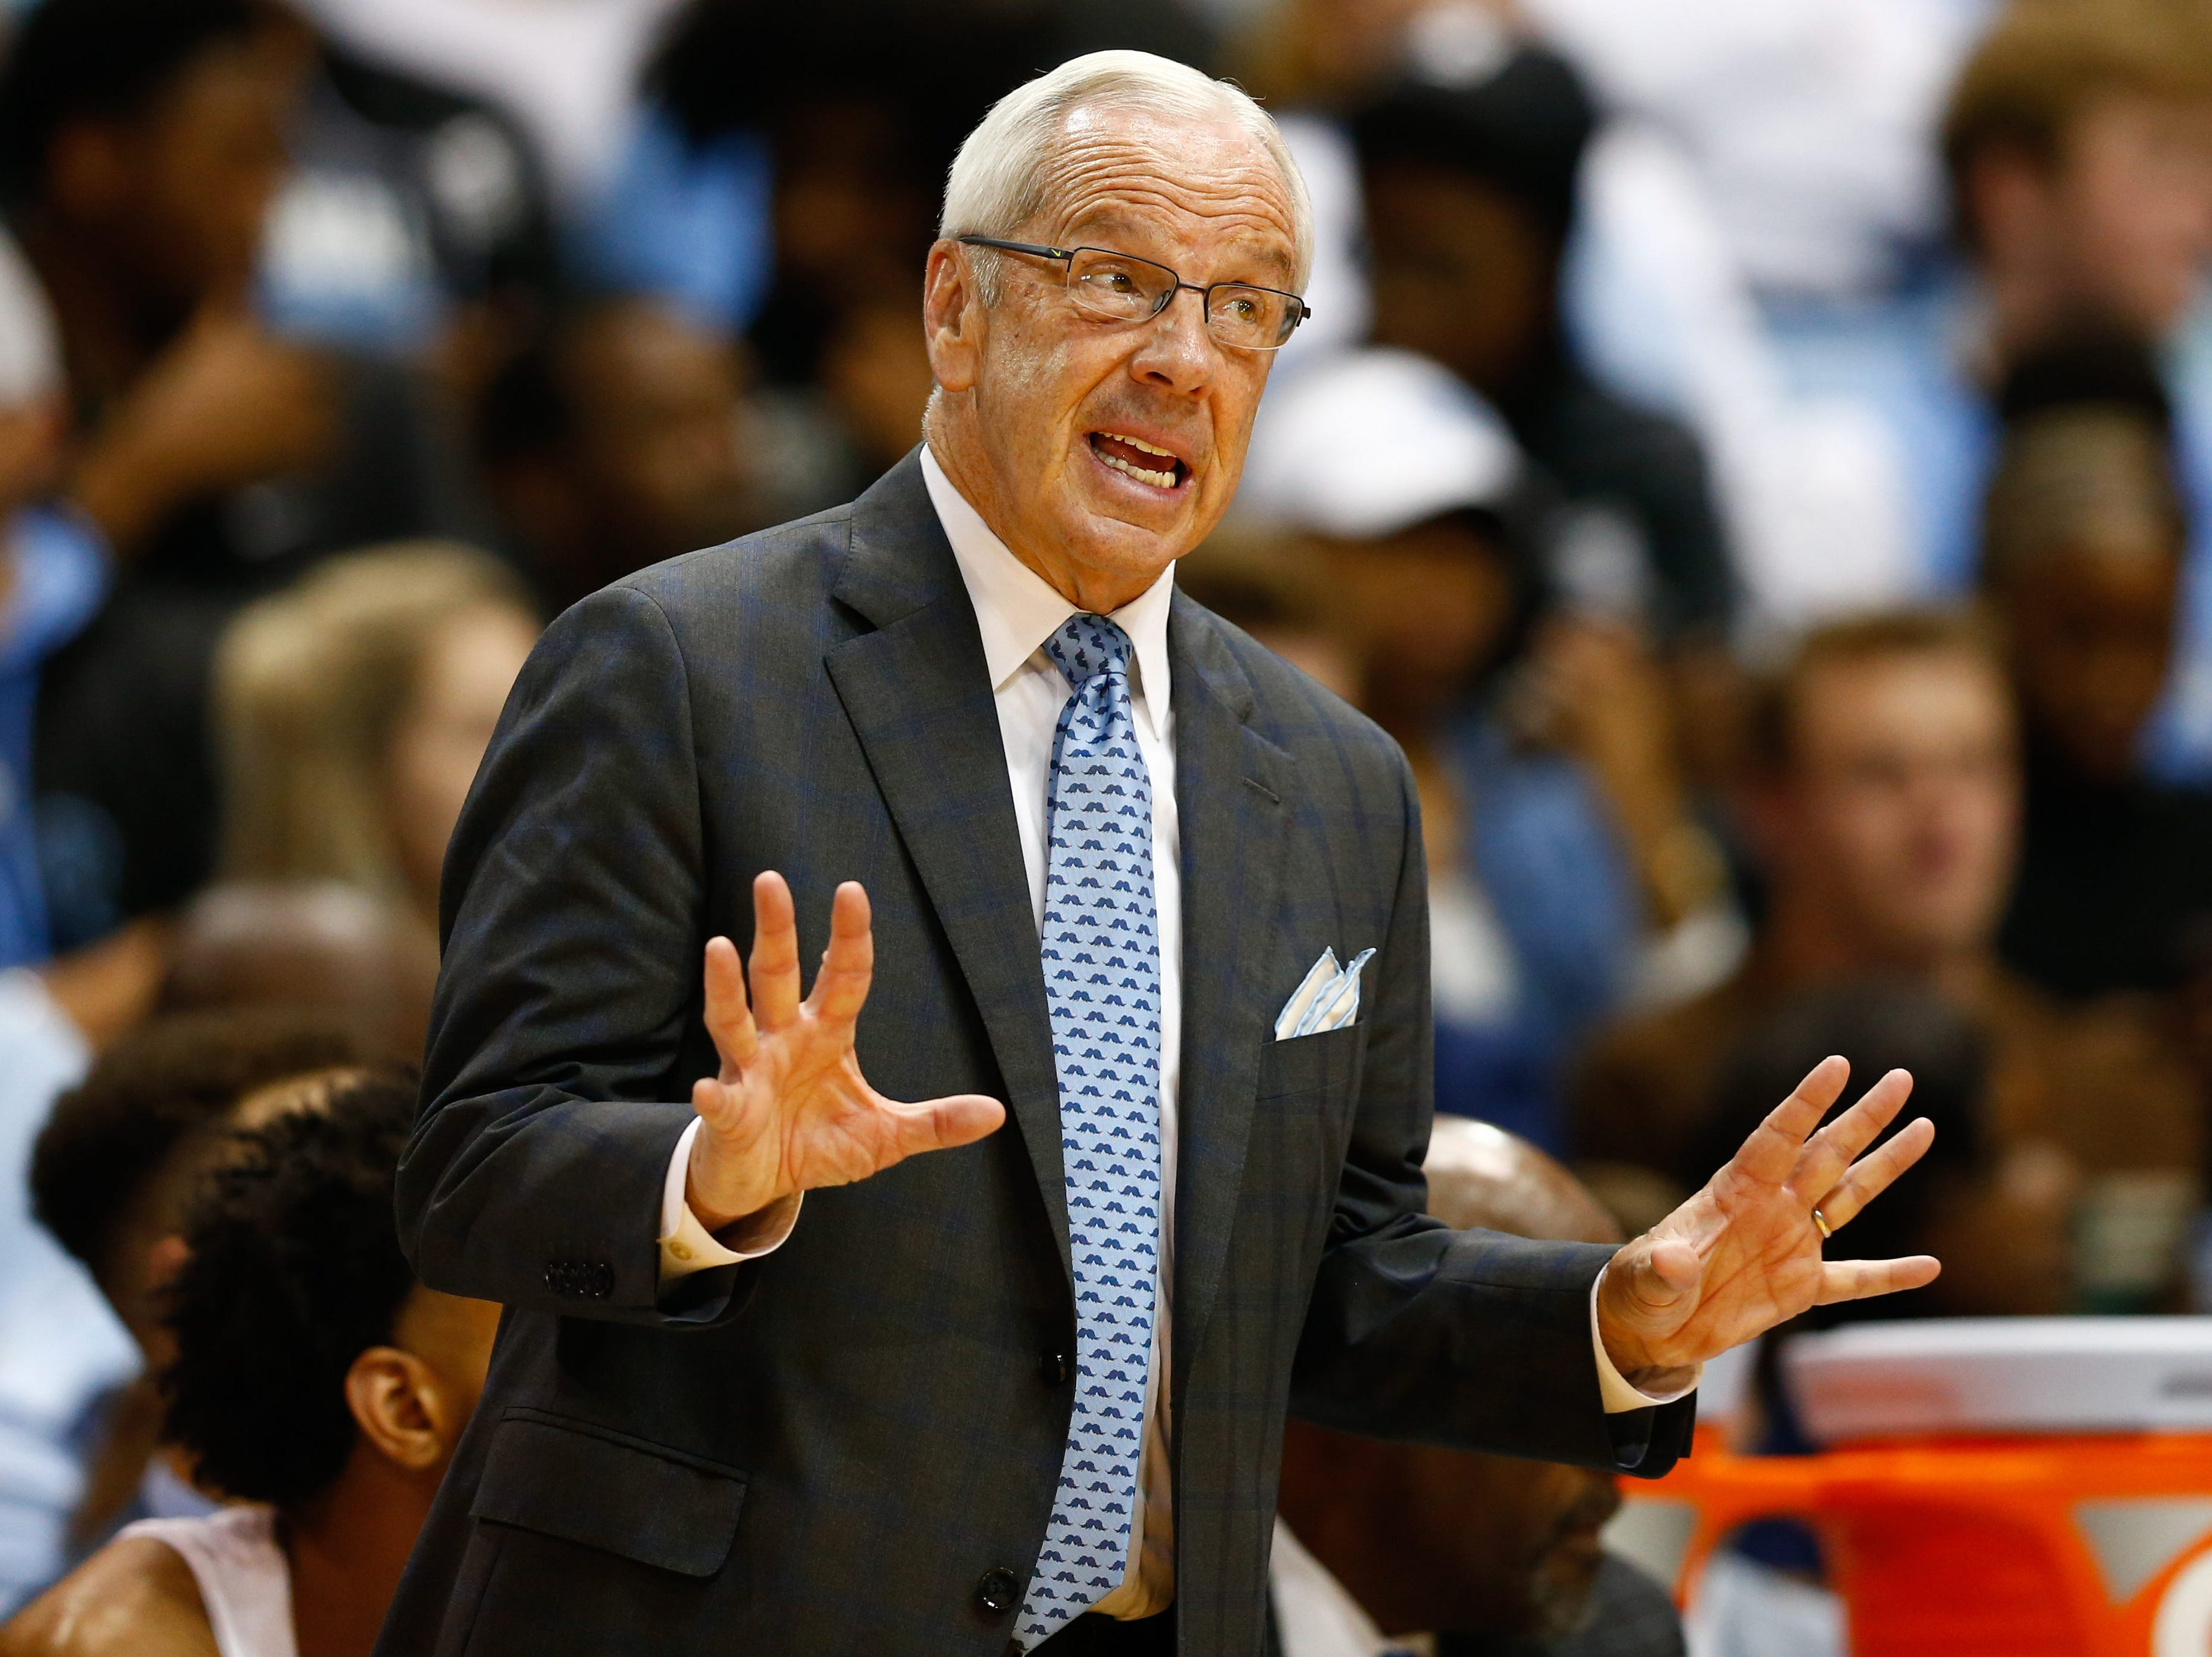 Dec 6, 2017; Chapel Hill, NC, USA; North Carolina Tar Heels head coach Roy Williams calls out to the players in the second half against the Western Carolina Catamounts at Dean E. Smith Center. Mandatory Credit: Jeremy Brevard-USA TODAY Sports